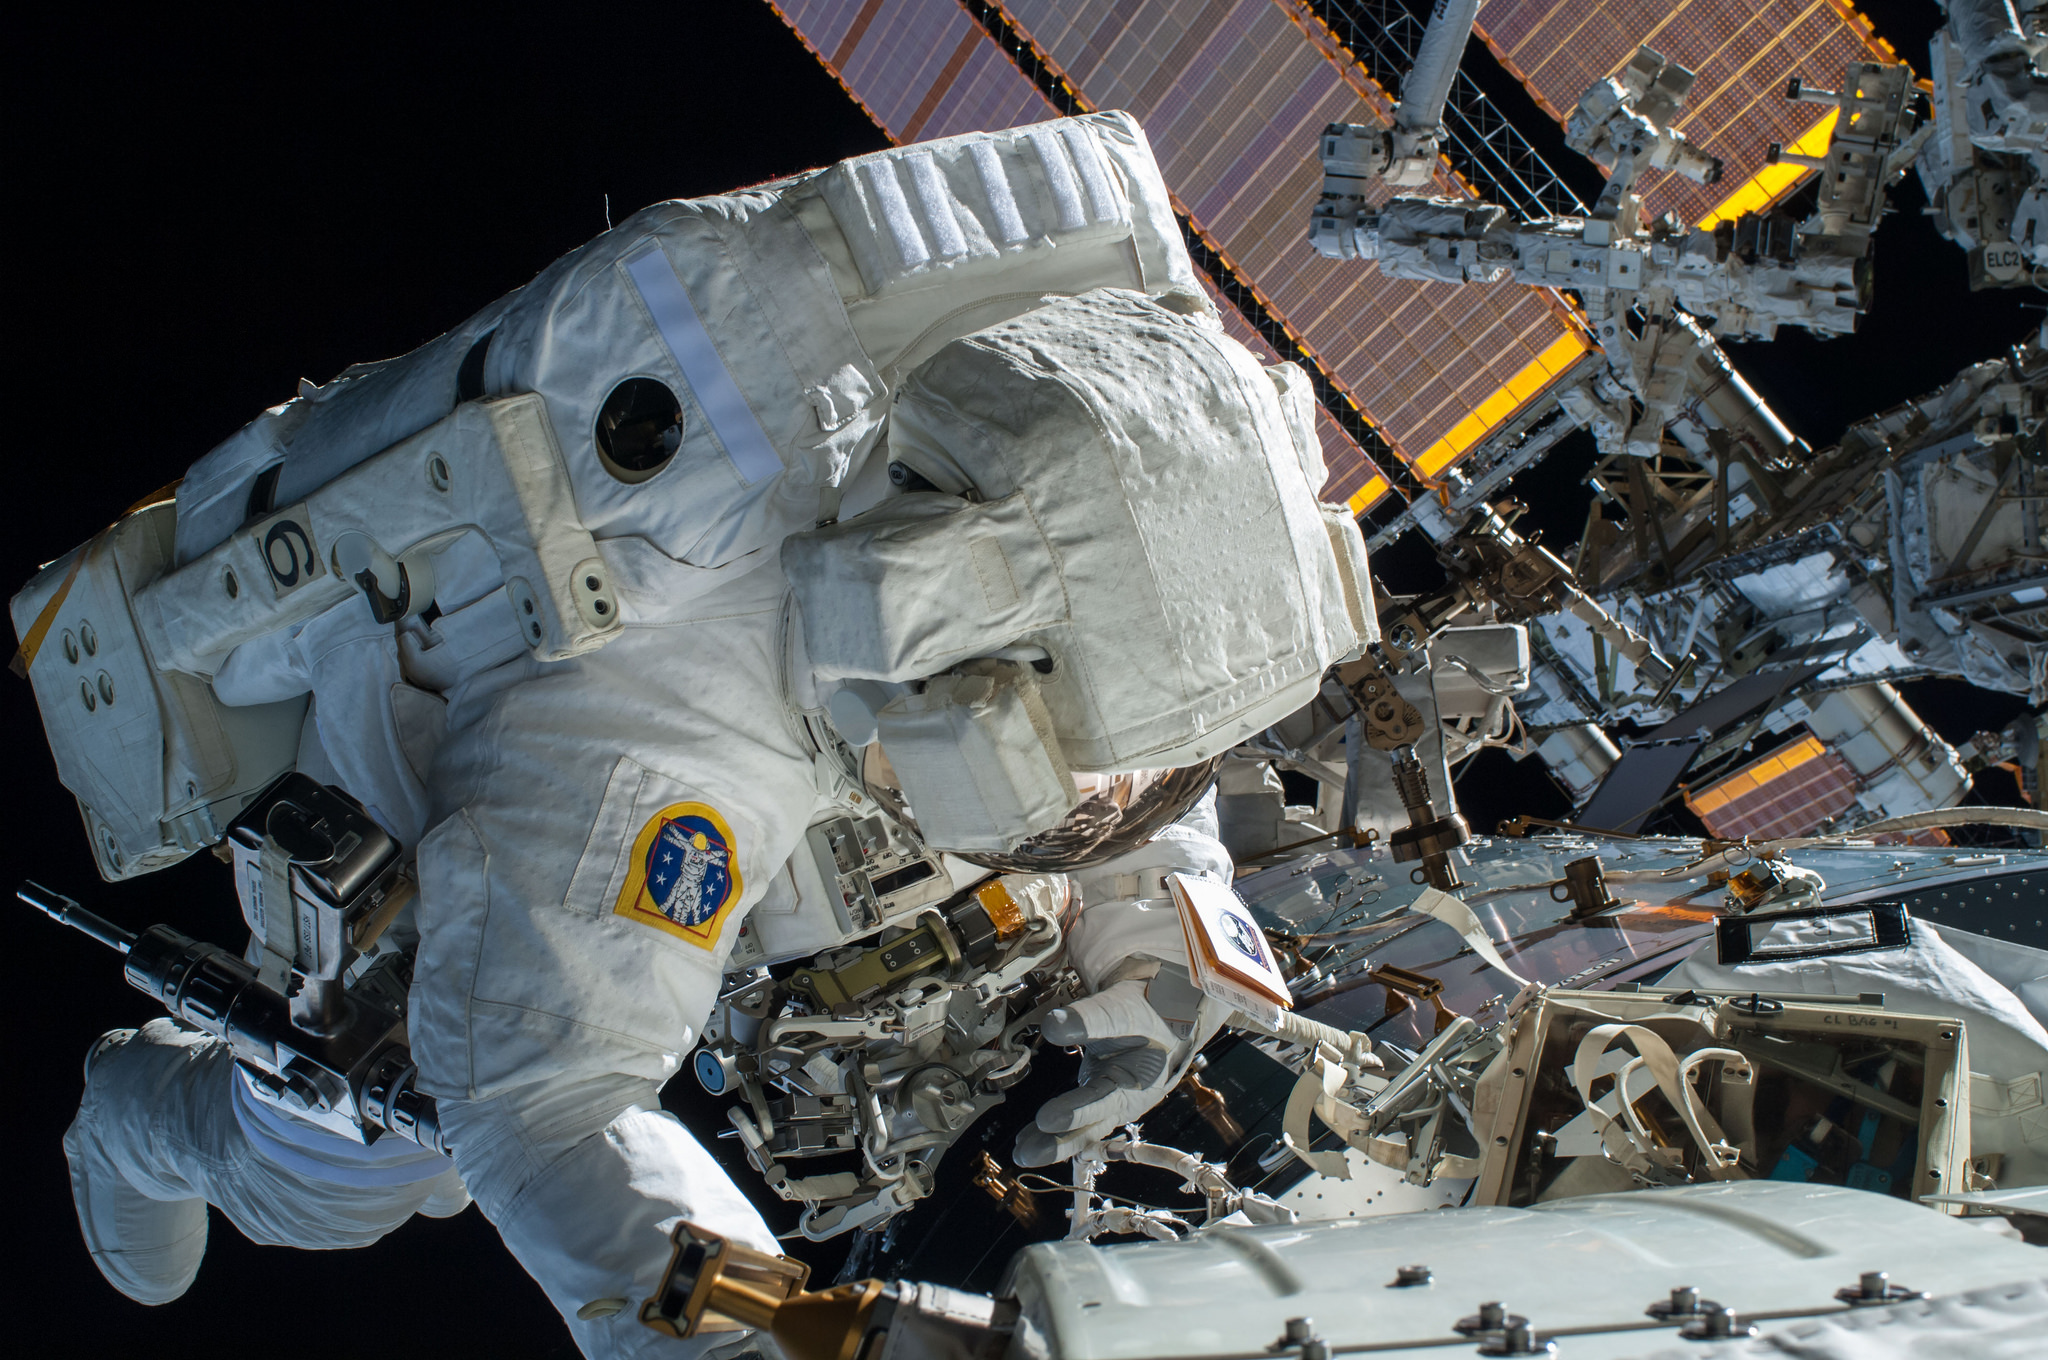 astronaut from nasa - photo #47